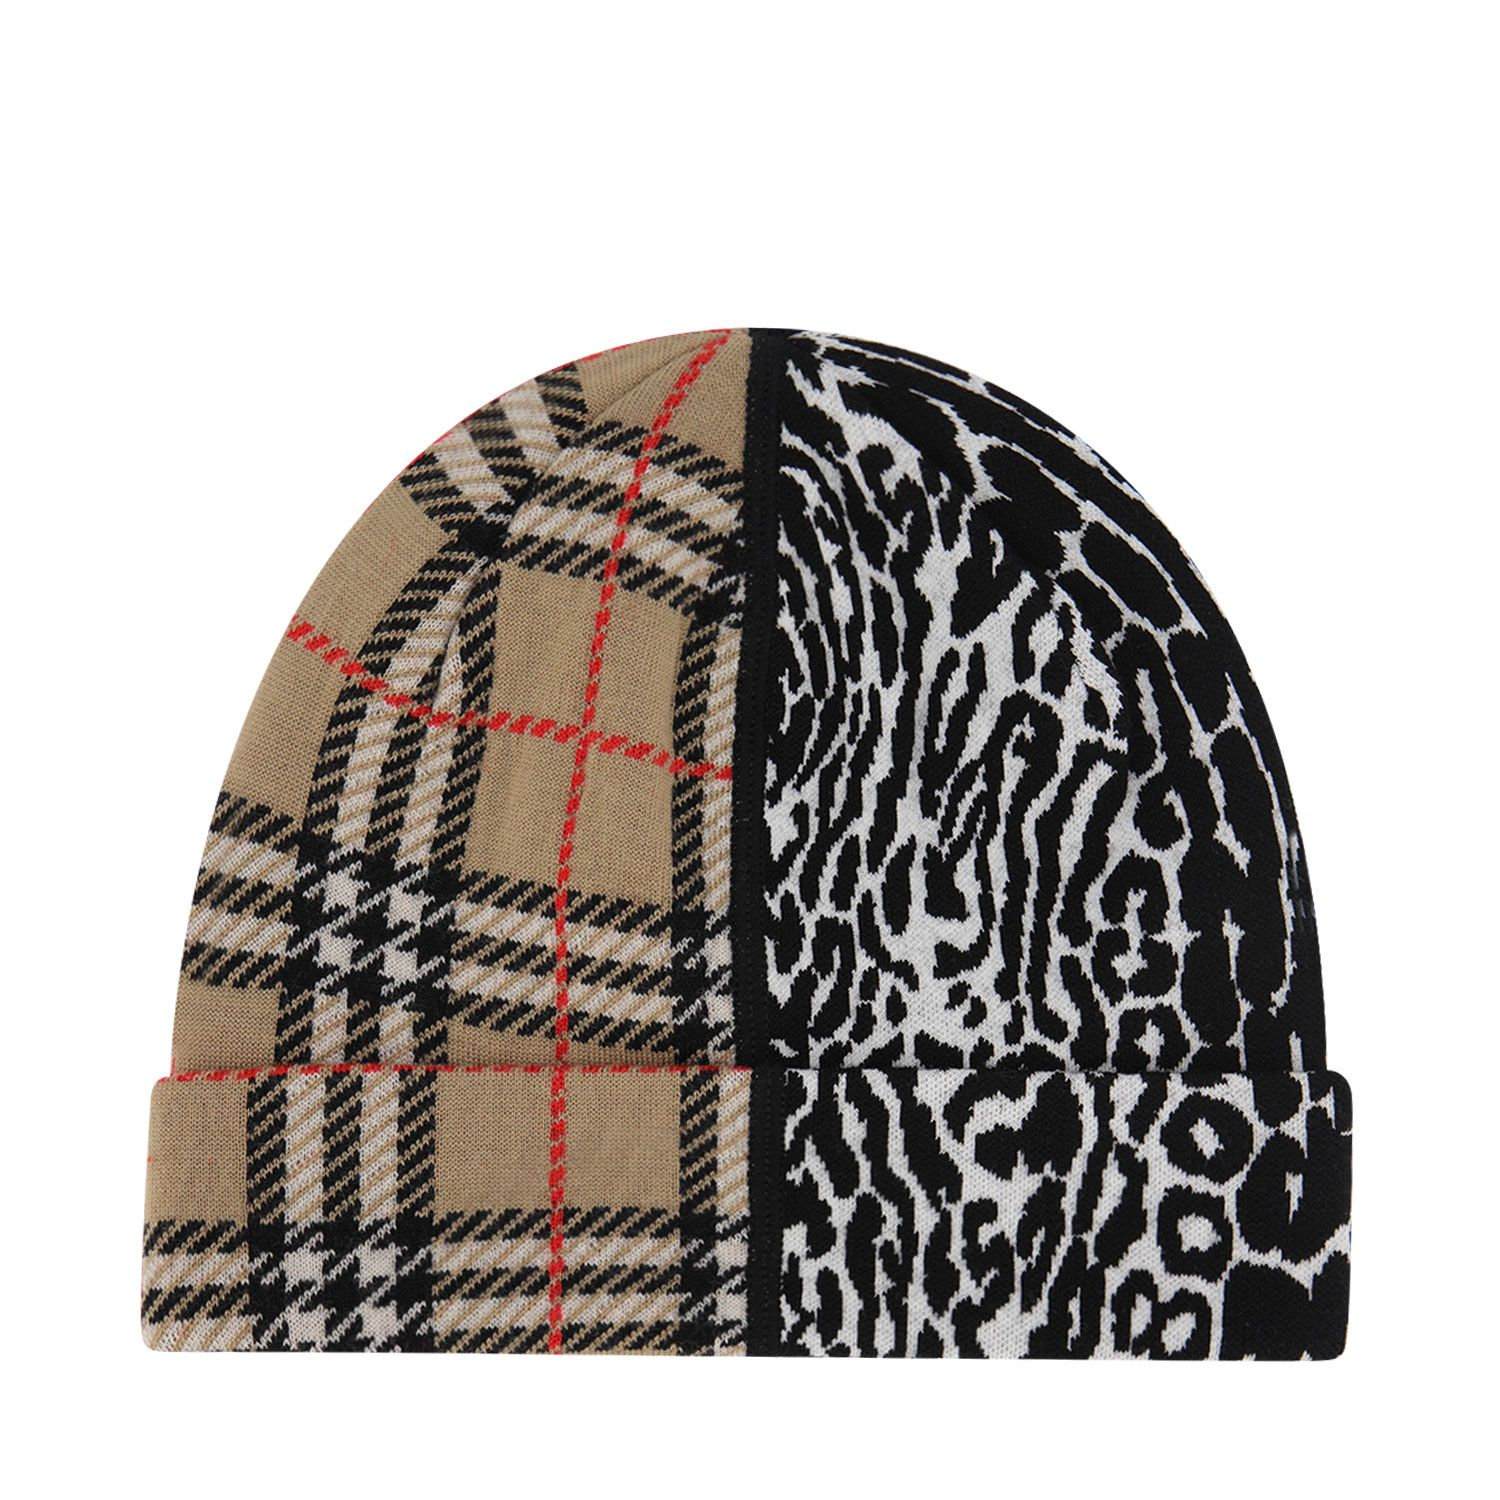 Picture of Burberry 8033119 kids hat beige